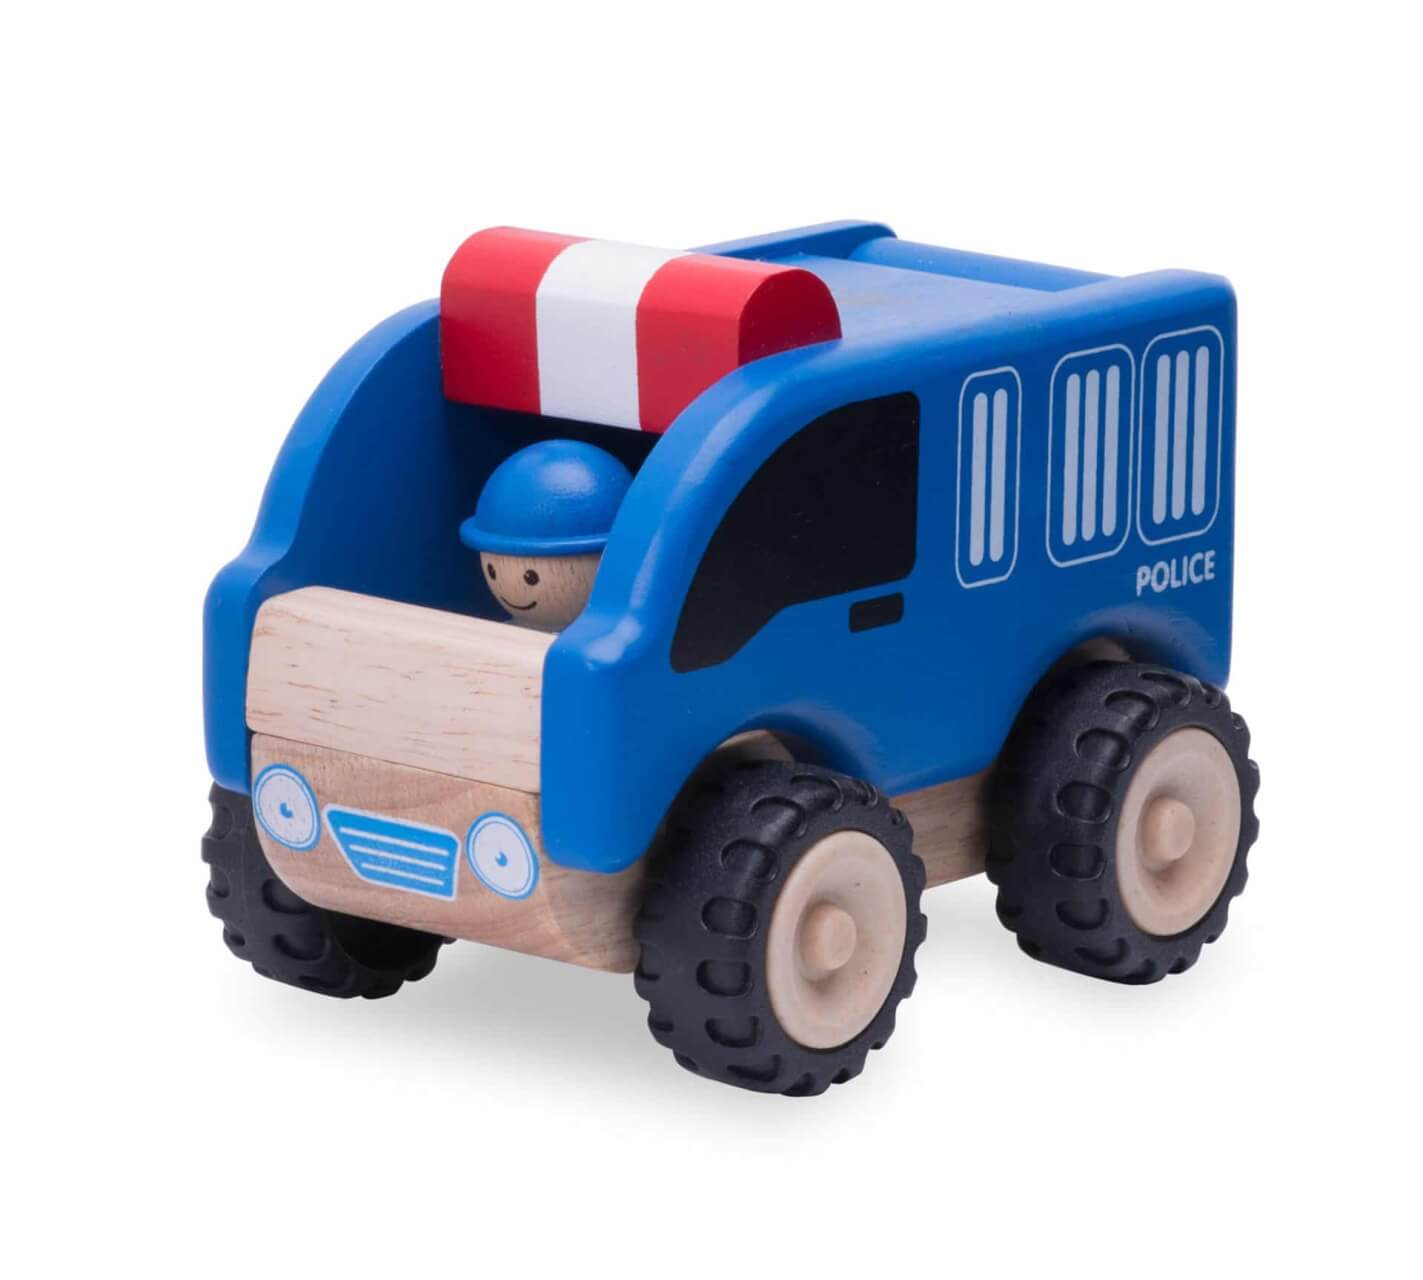 f5-inch wooden police car for imaginative play